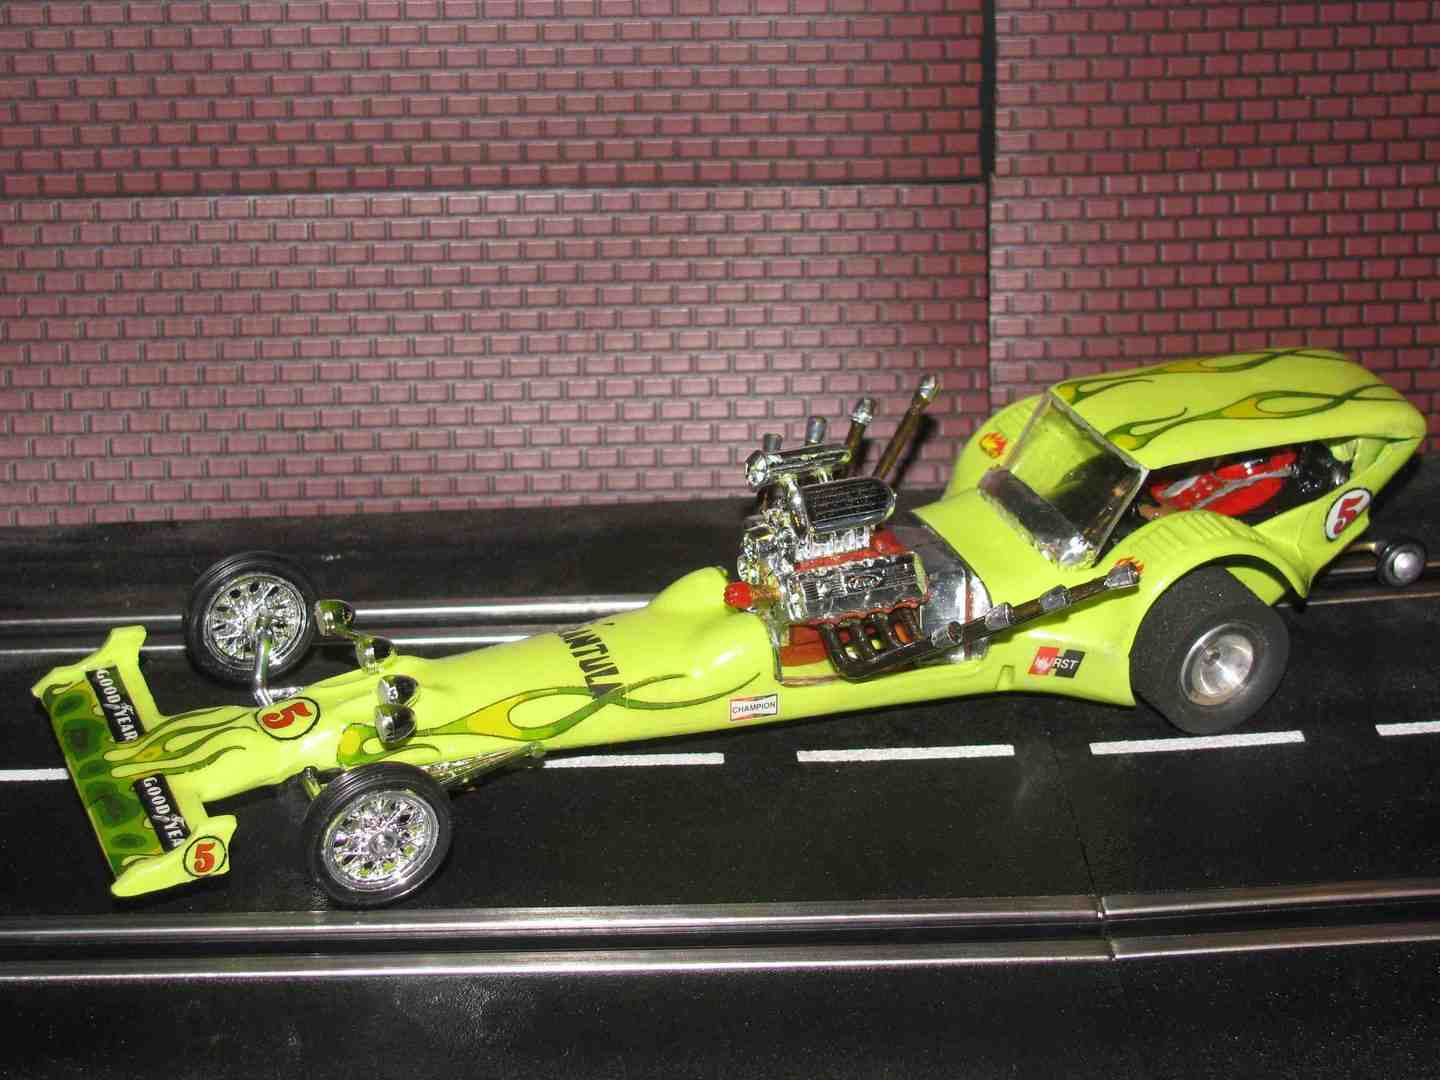 * SORRY YOU MISSED OUT ON THIS ONE - SOLD * Revell T'rantula NHRA Dragster - Slot Car - 1/24 Scale